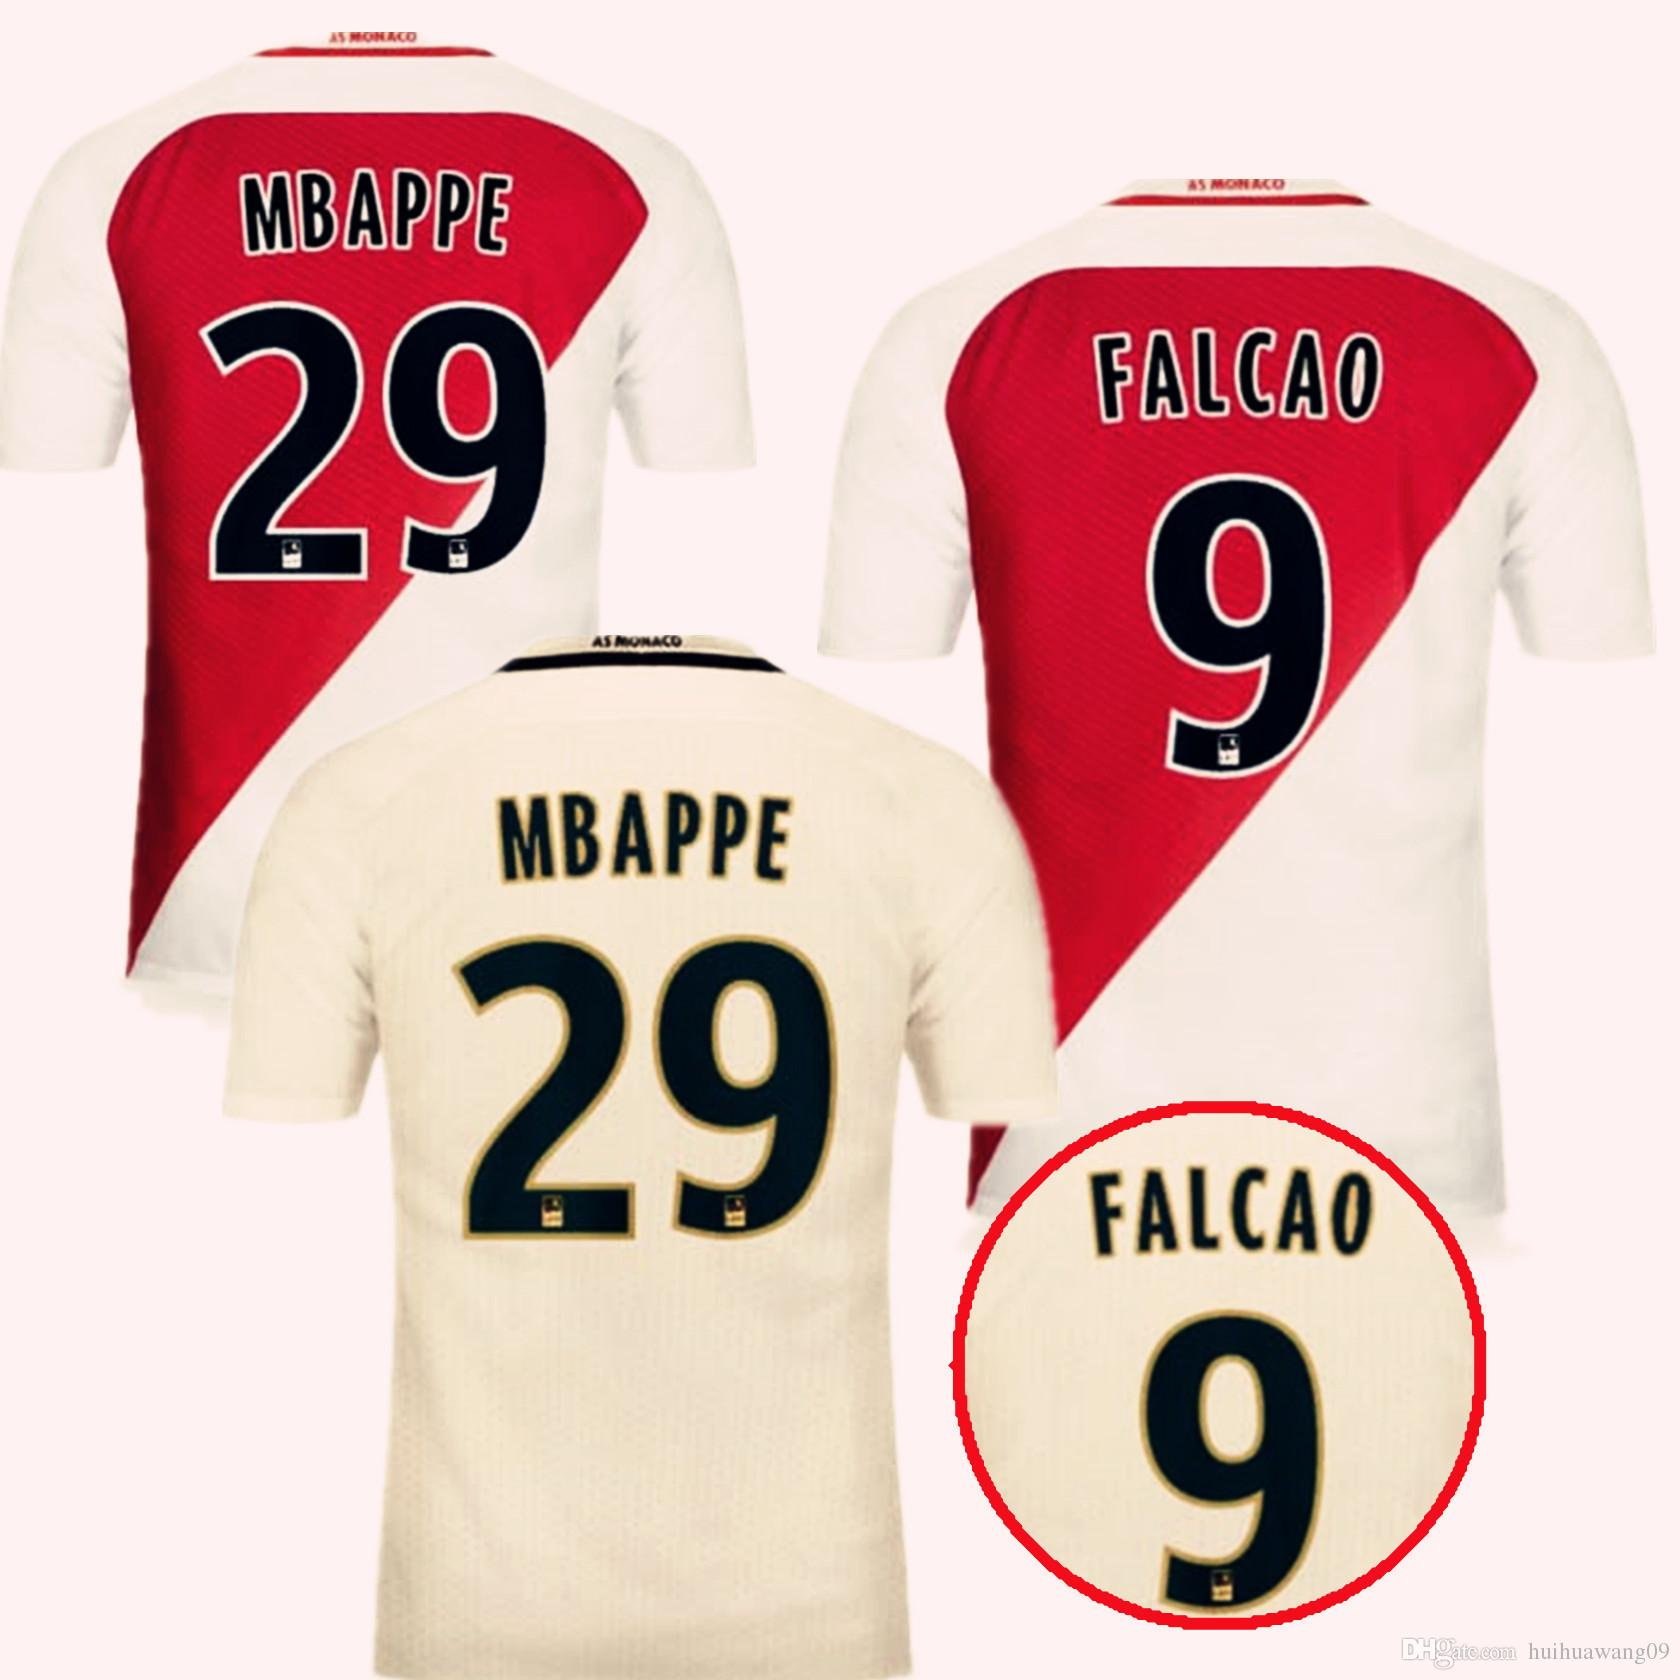 2017 2016 17 home away monaco jersey soccer shirts bernardo falcao mbappe soccer jerseys 16 17. Black Bedroom Furniture Sets. Home Design Ideas